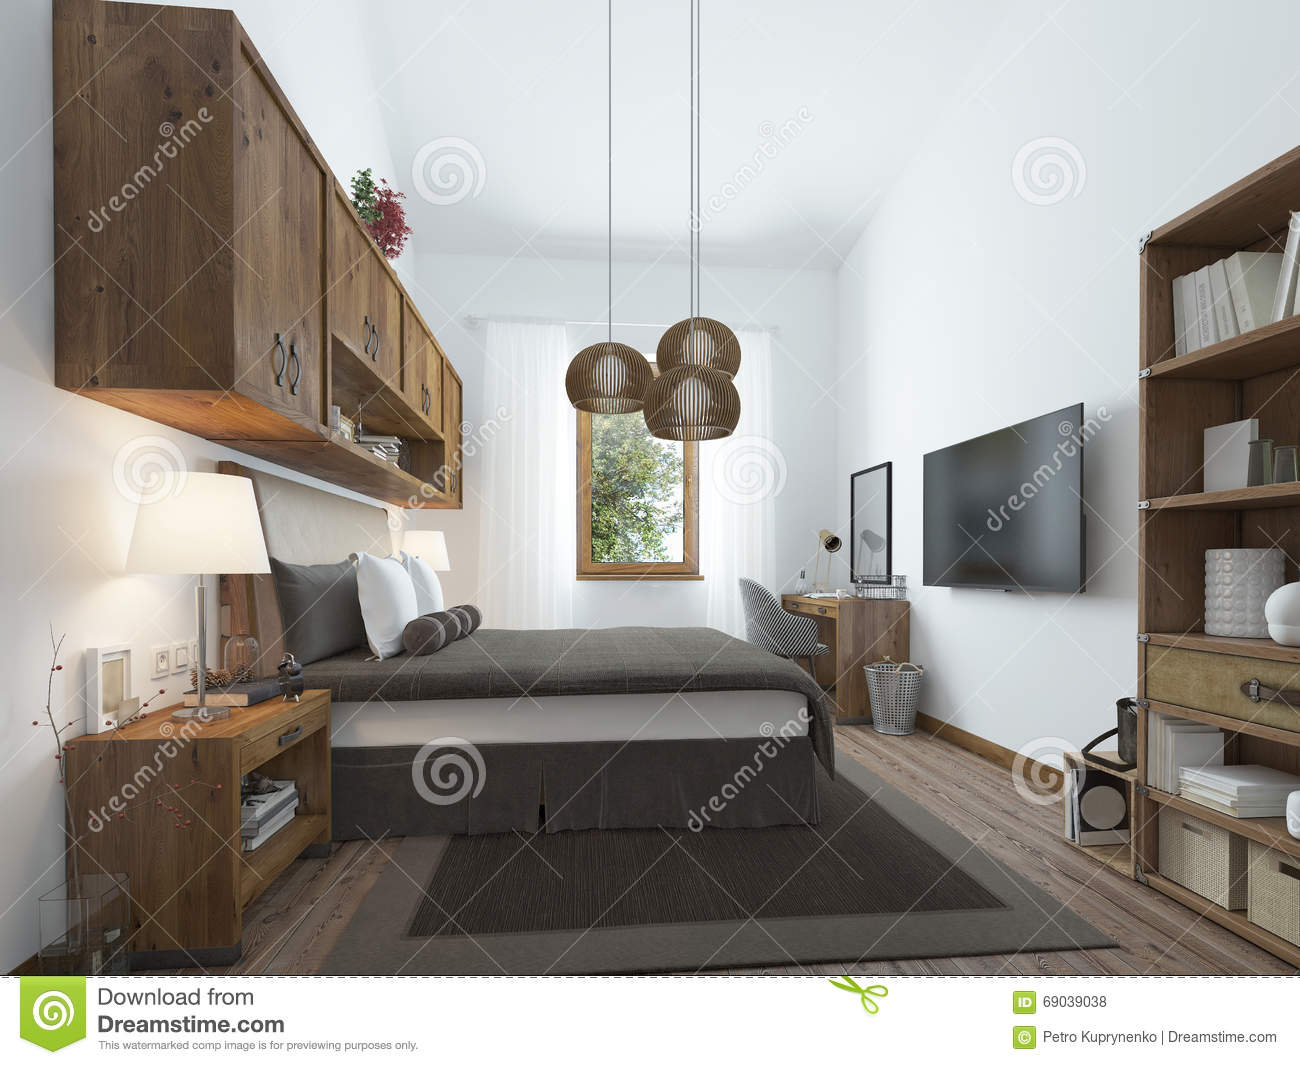 Large Bedroom In Modern Style With Elements Of A Rustic Loft Editorial Stock Photo Image Of Large Elements 69039038